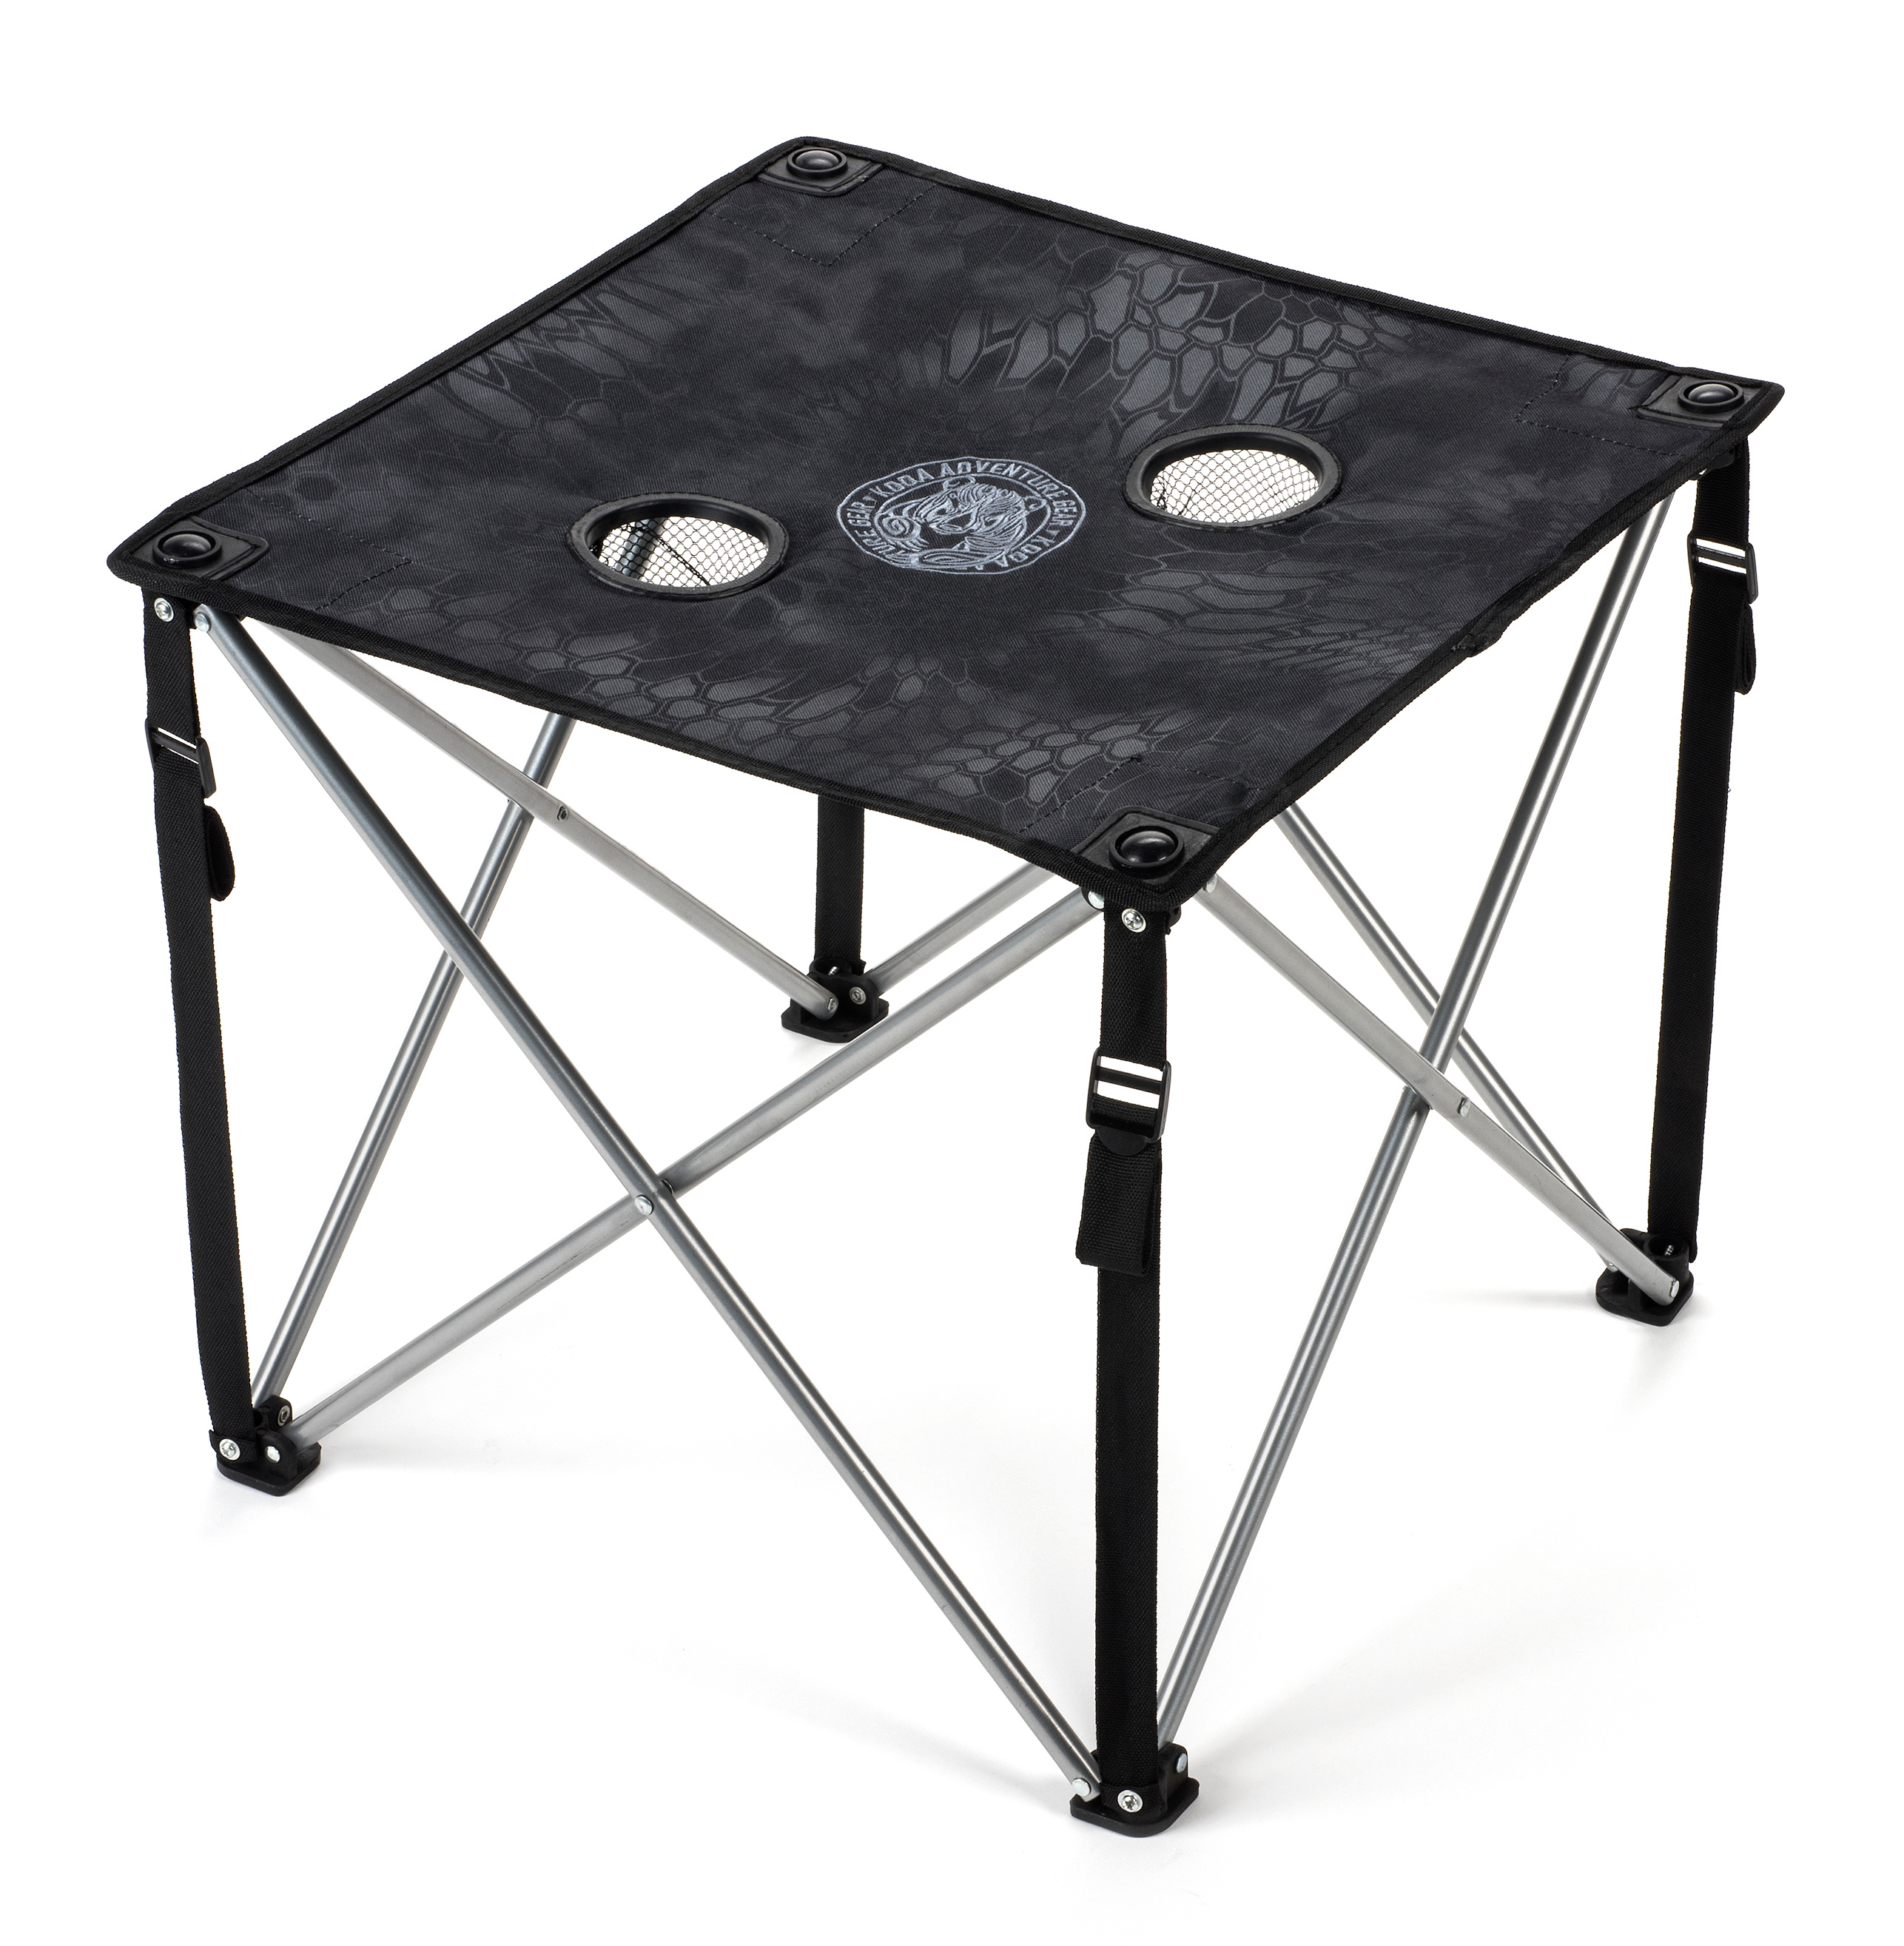 Click here to buy Lucky Bums Quick Camp Table with Carrying Bag, Kryptek Typhon by Lucky Bums.